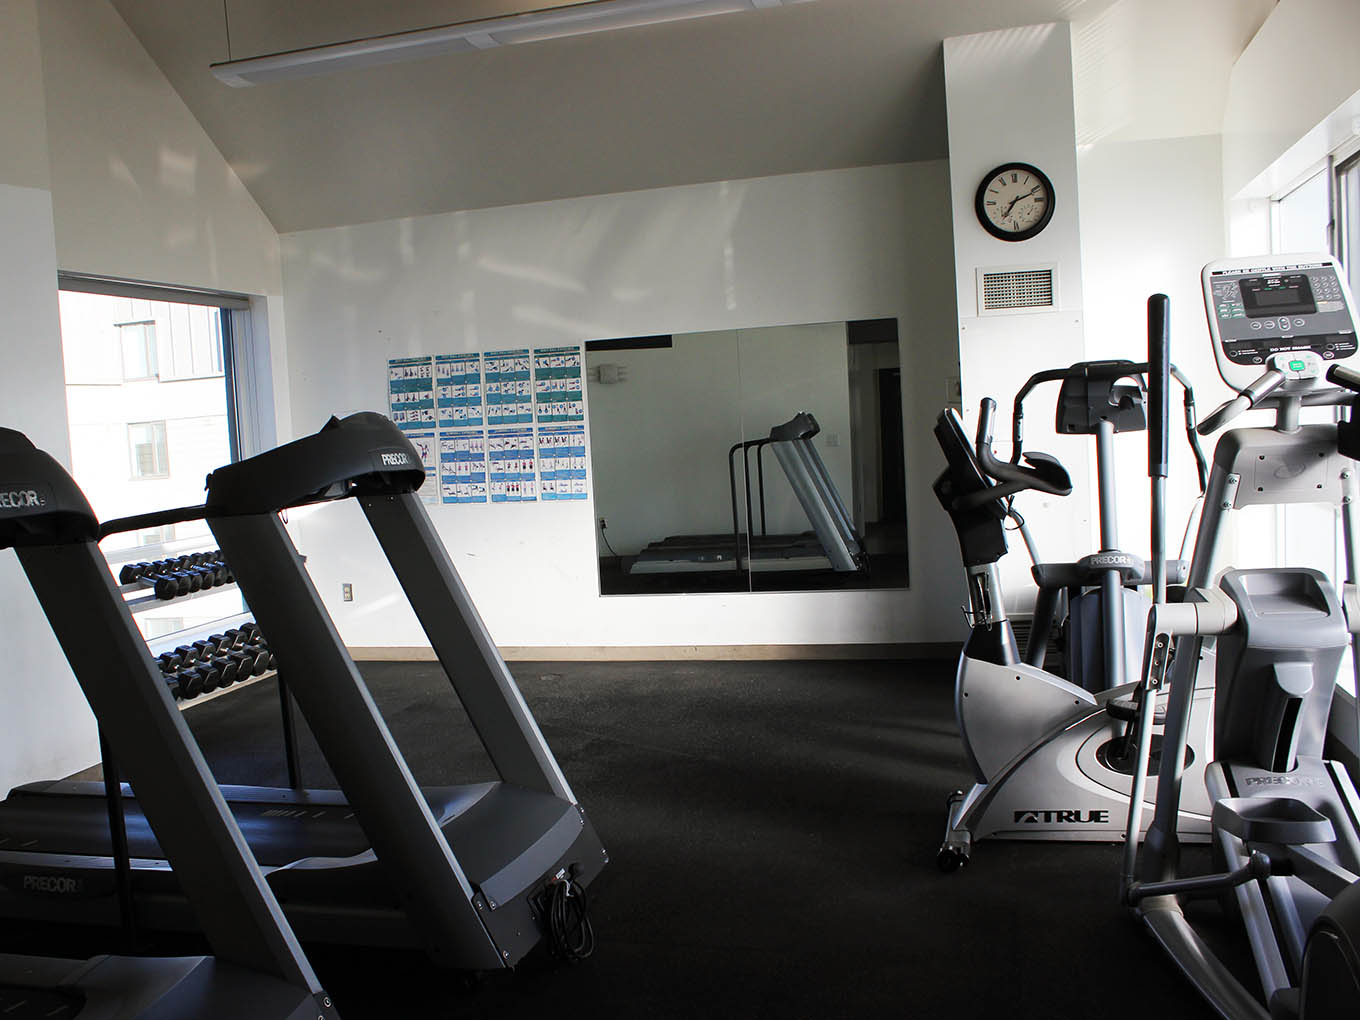 Suites and Amenities - Gym